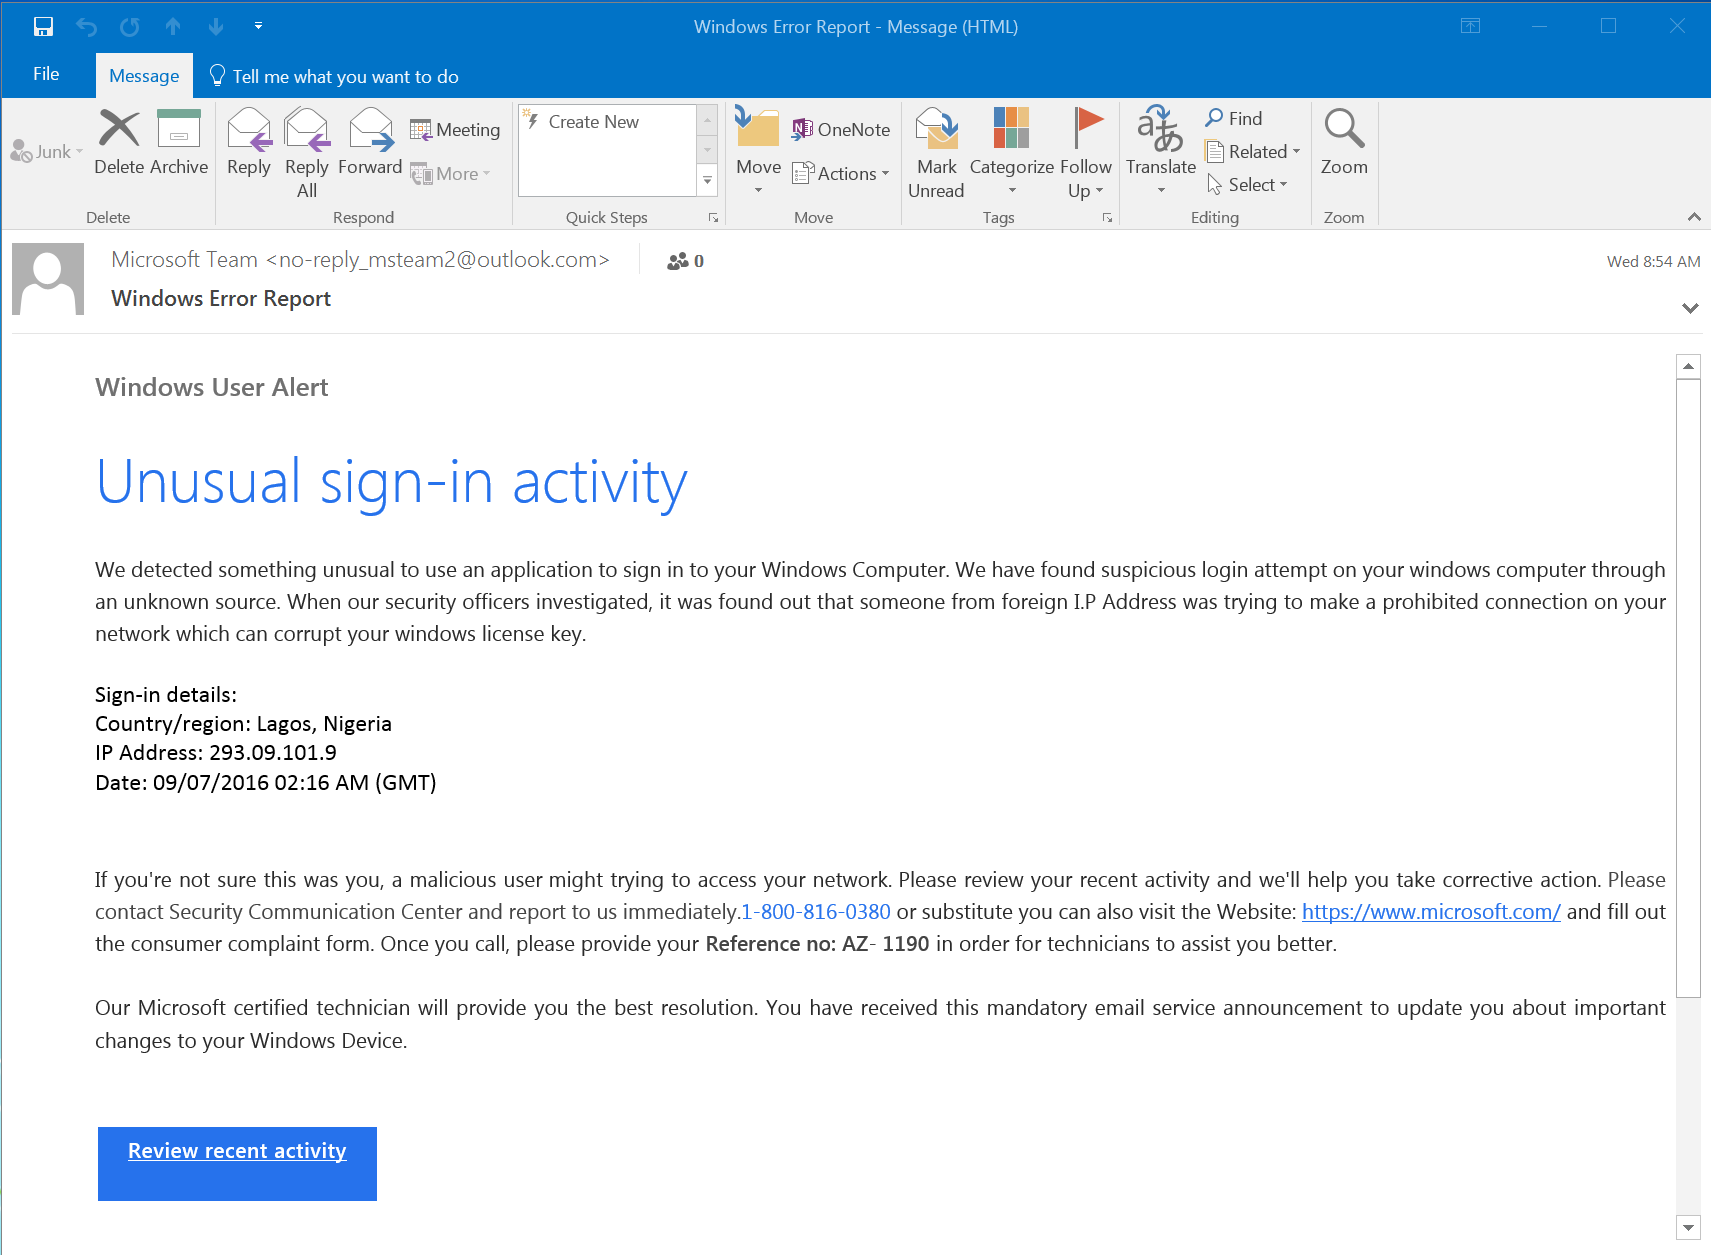 phishing example of email from Microsoft tech support